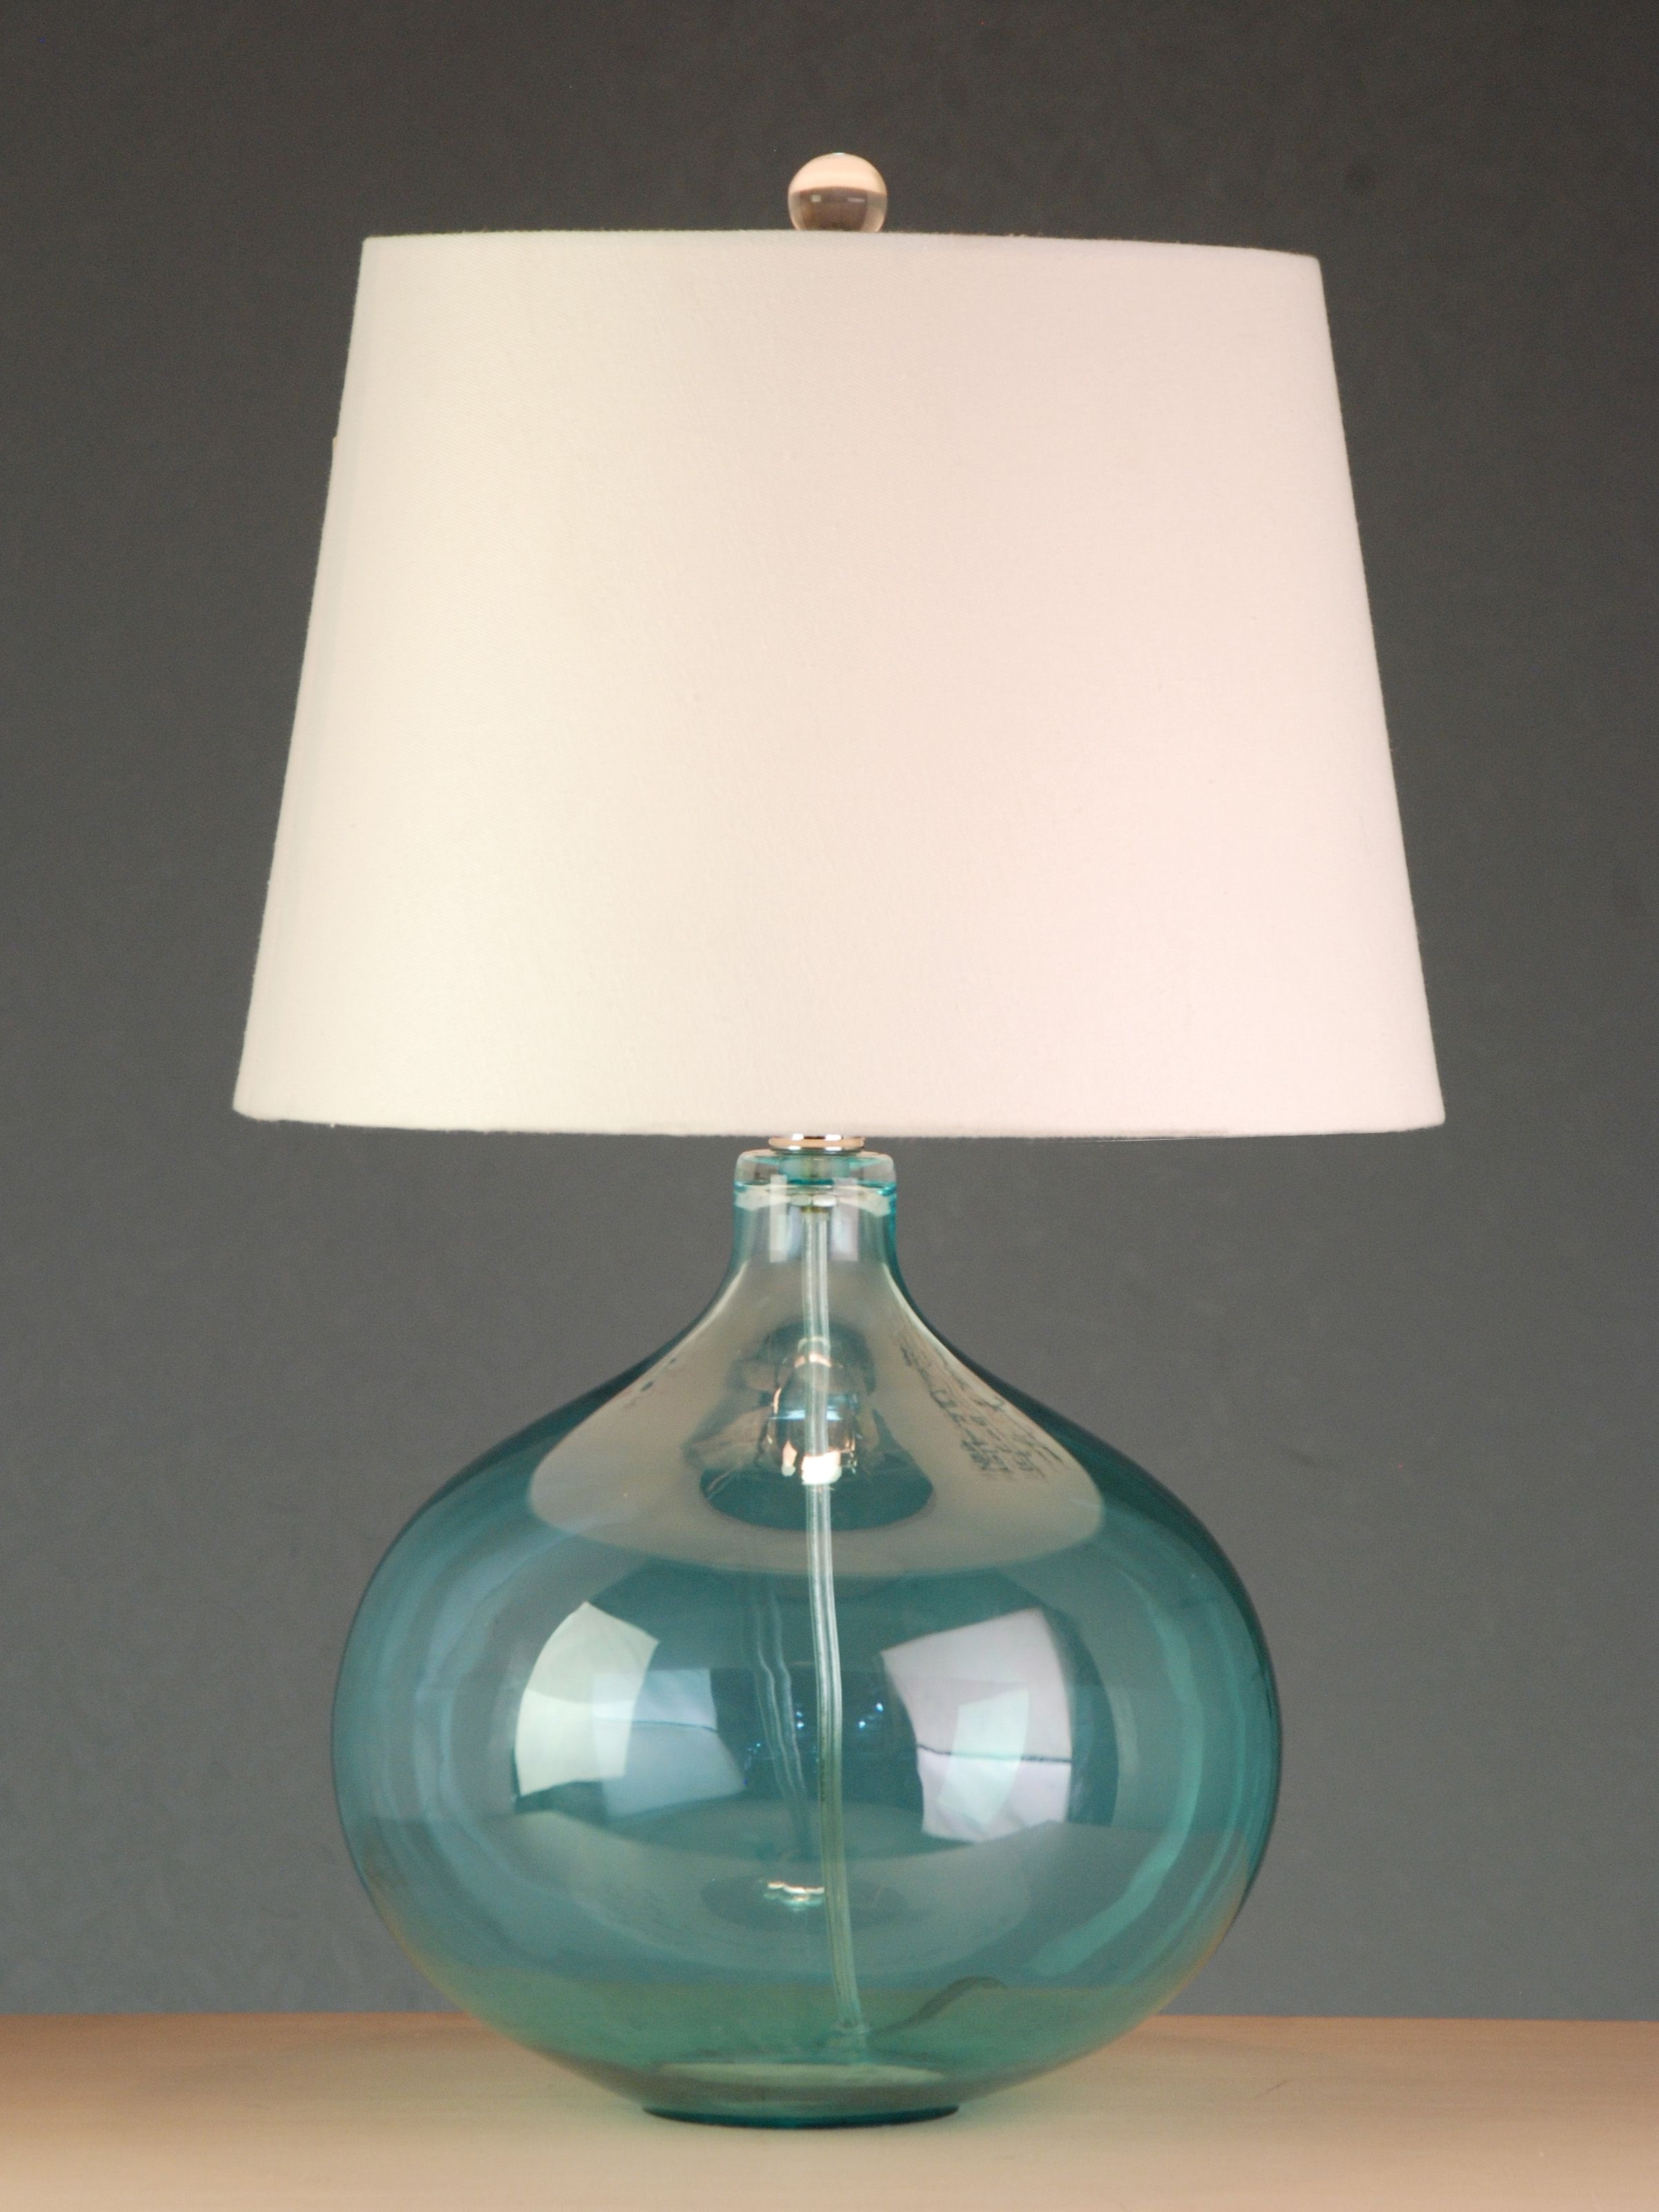 Favorite Living Room Table Lamps At Target Throughout Blue Glass Lamps At Target (View 9 of 15)